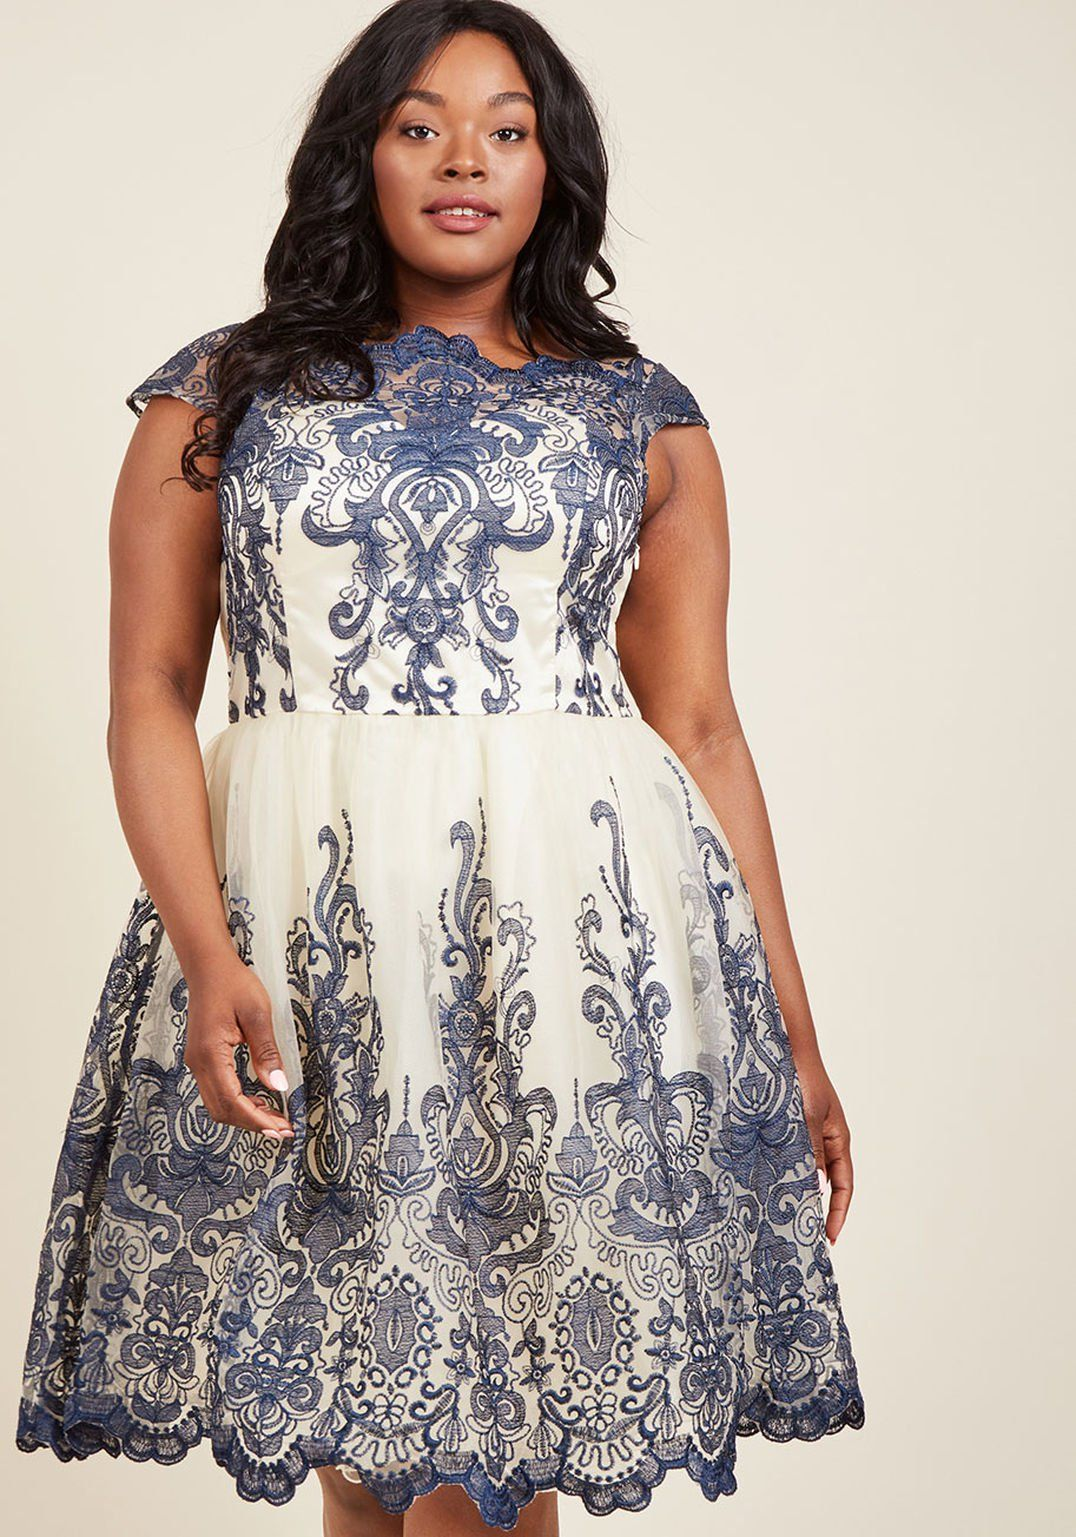 d28ed18528cf Chi Chi London Exquisite Elegance Lace Dress in Navy in 2019 ...